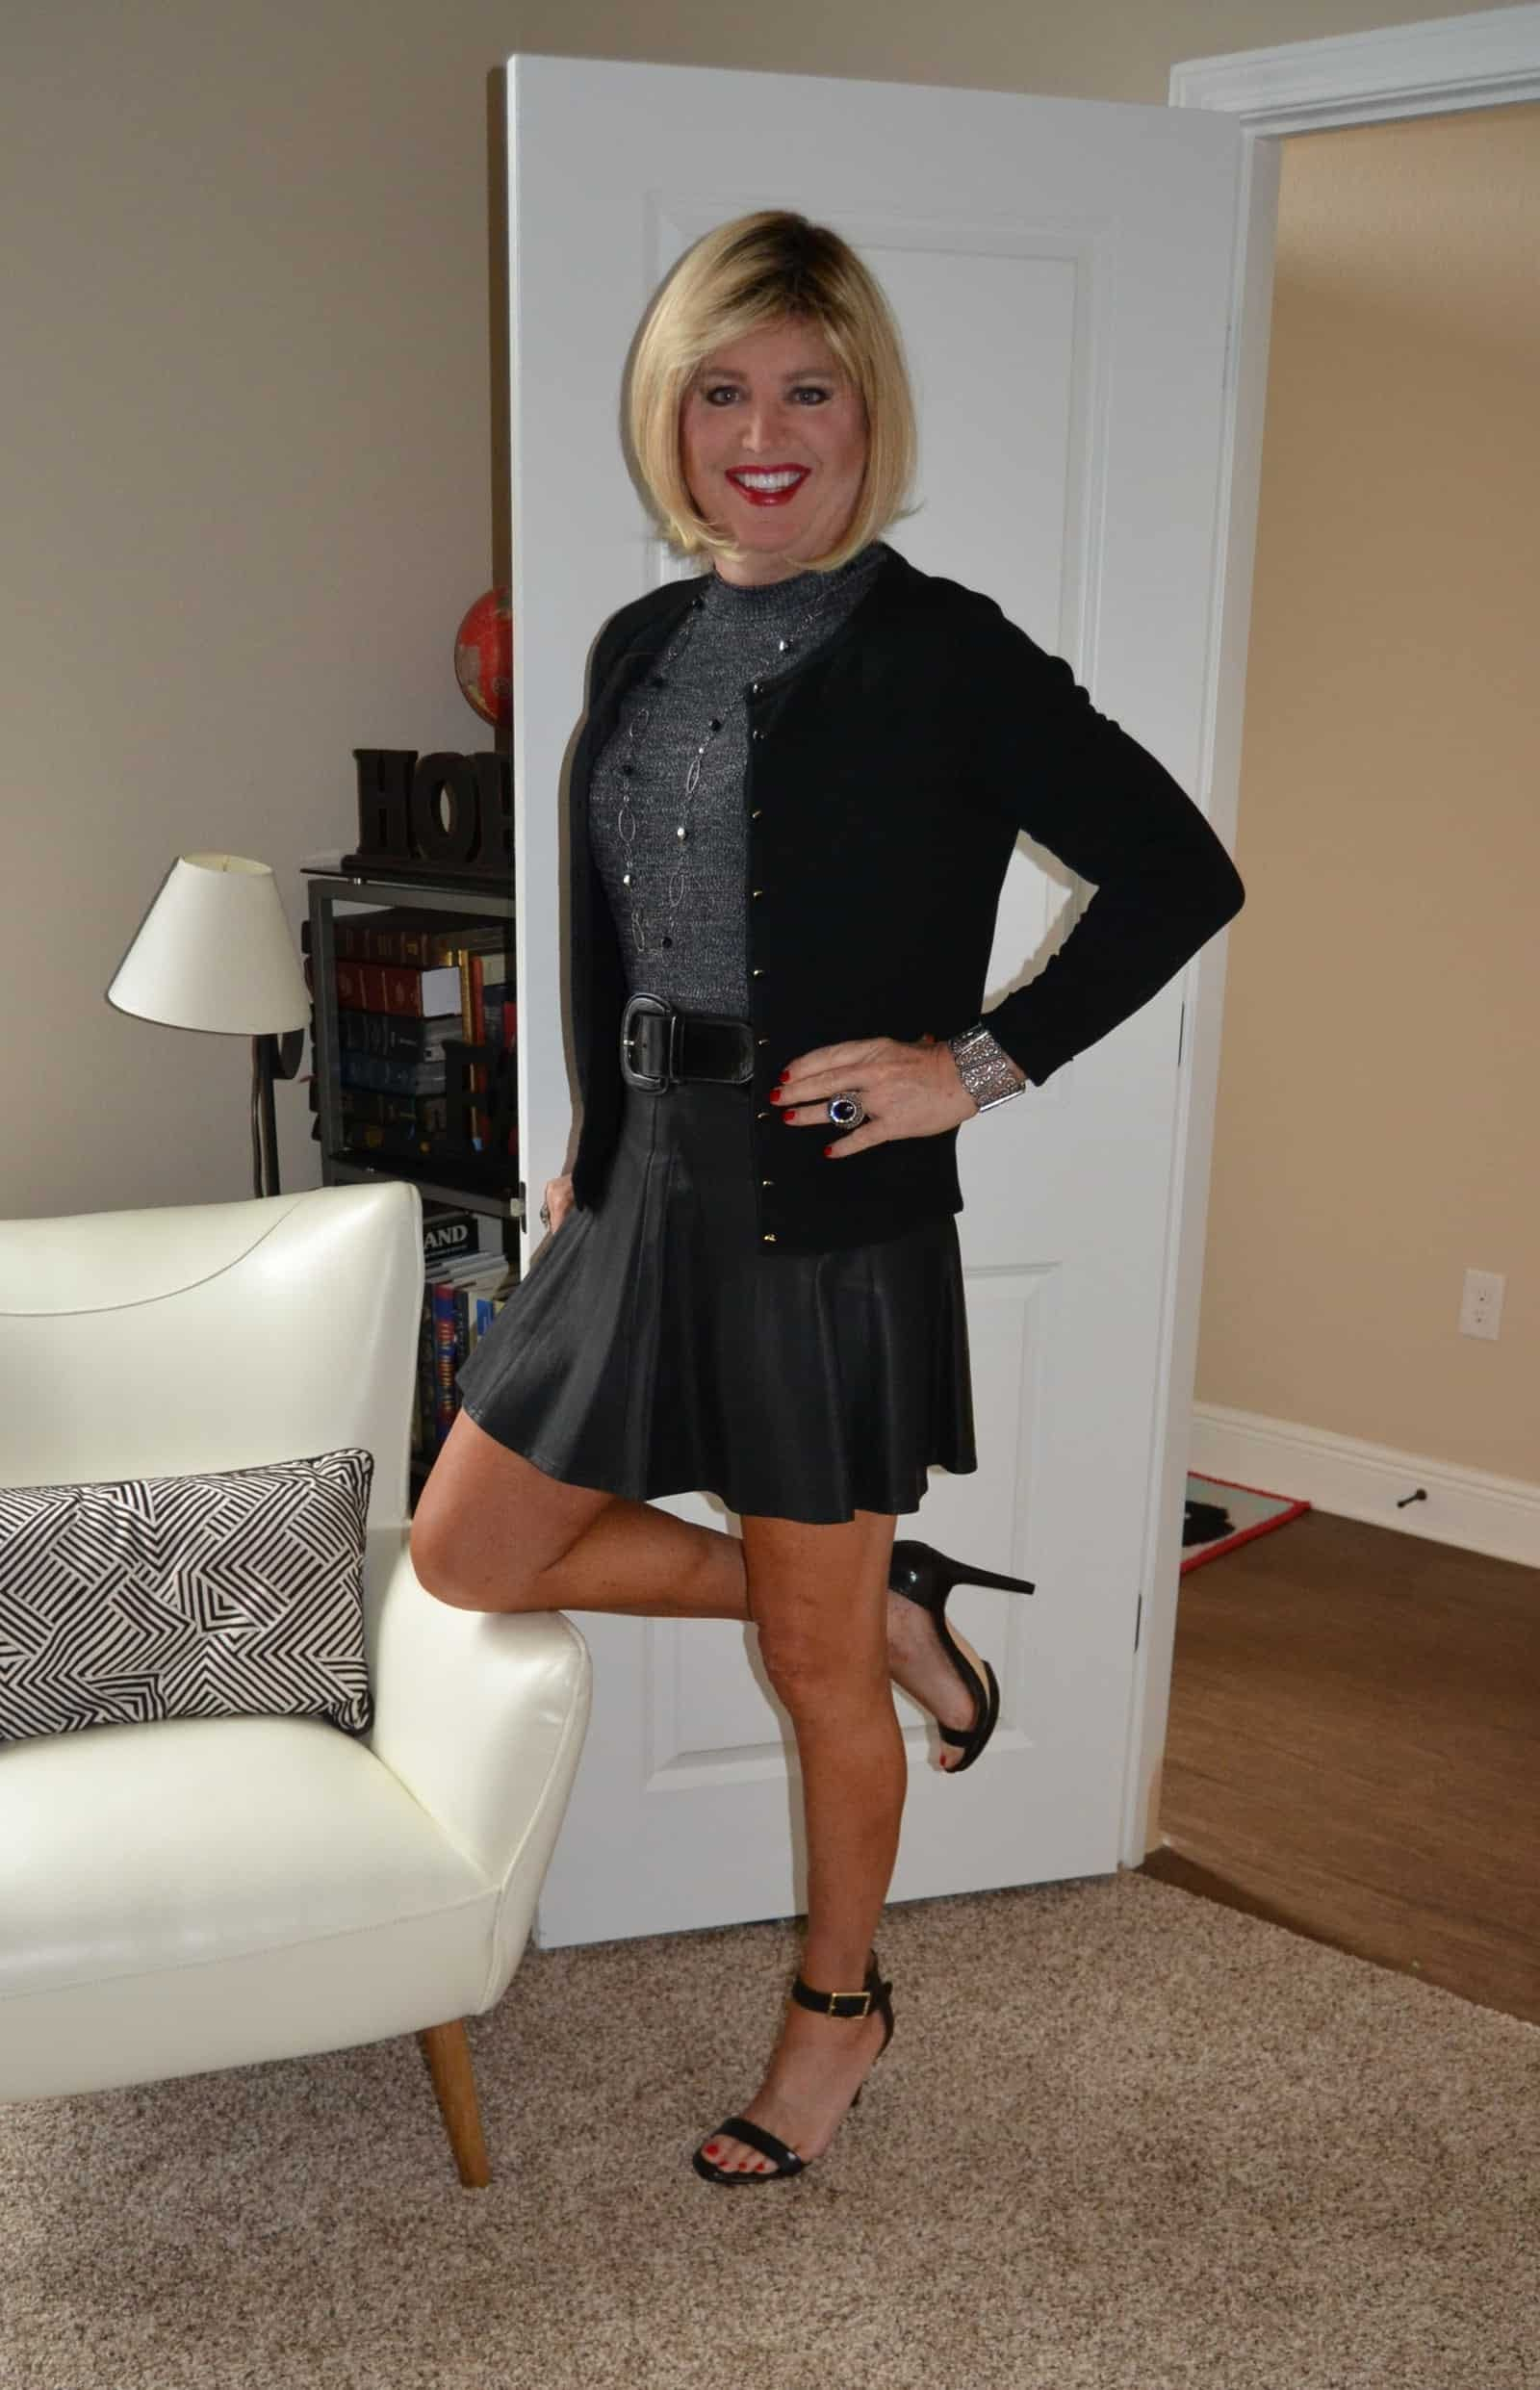 Leather Skater Skirts Are Just So Yummy!